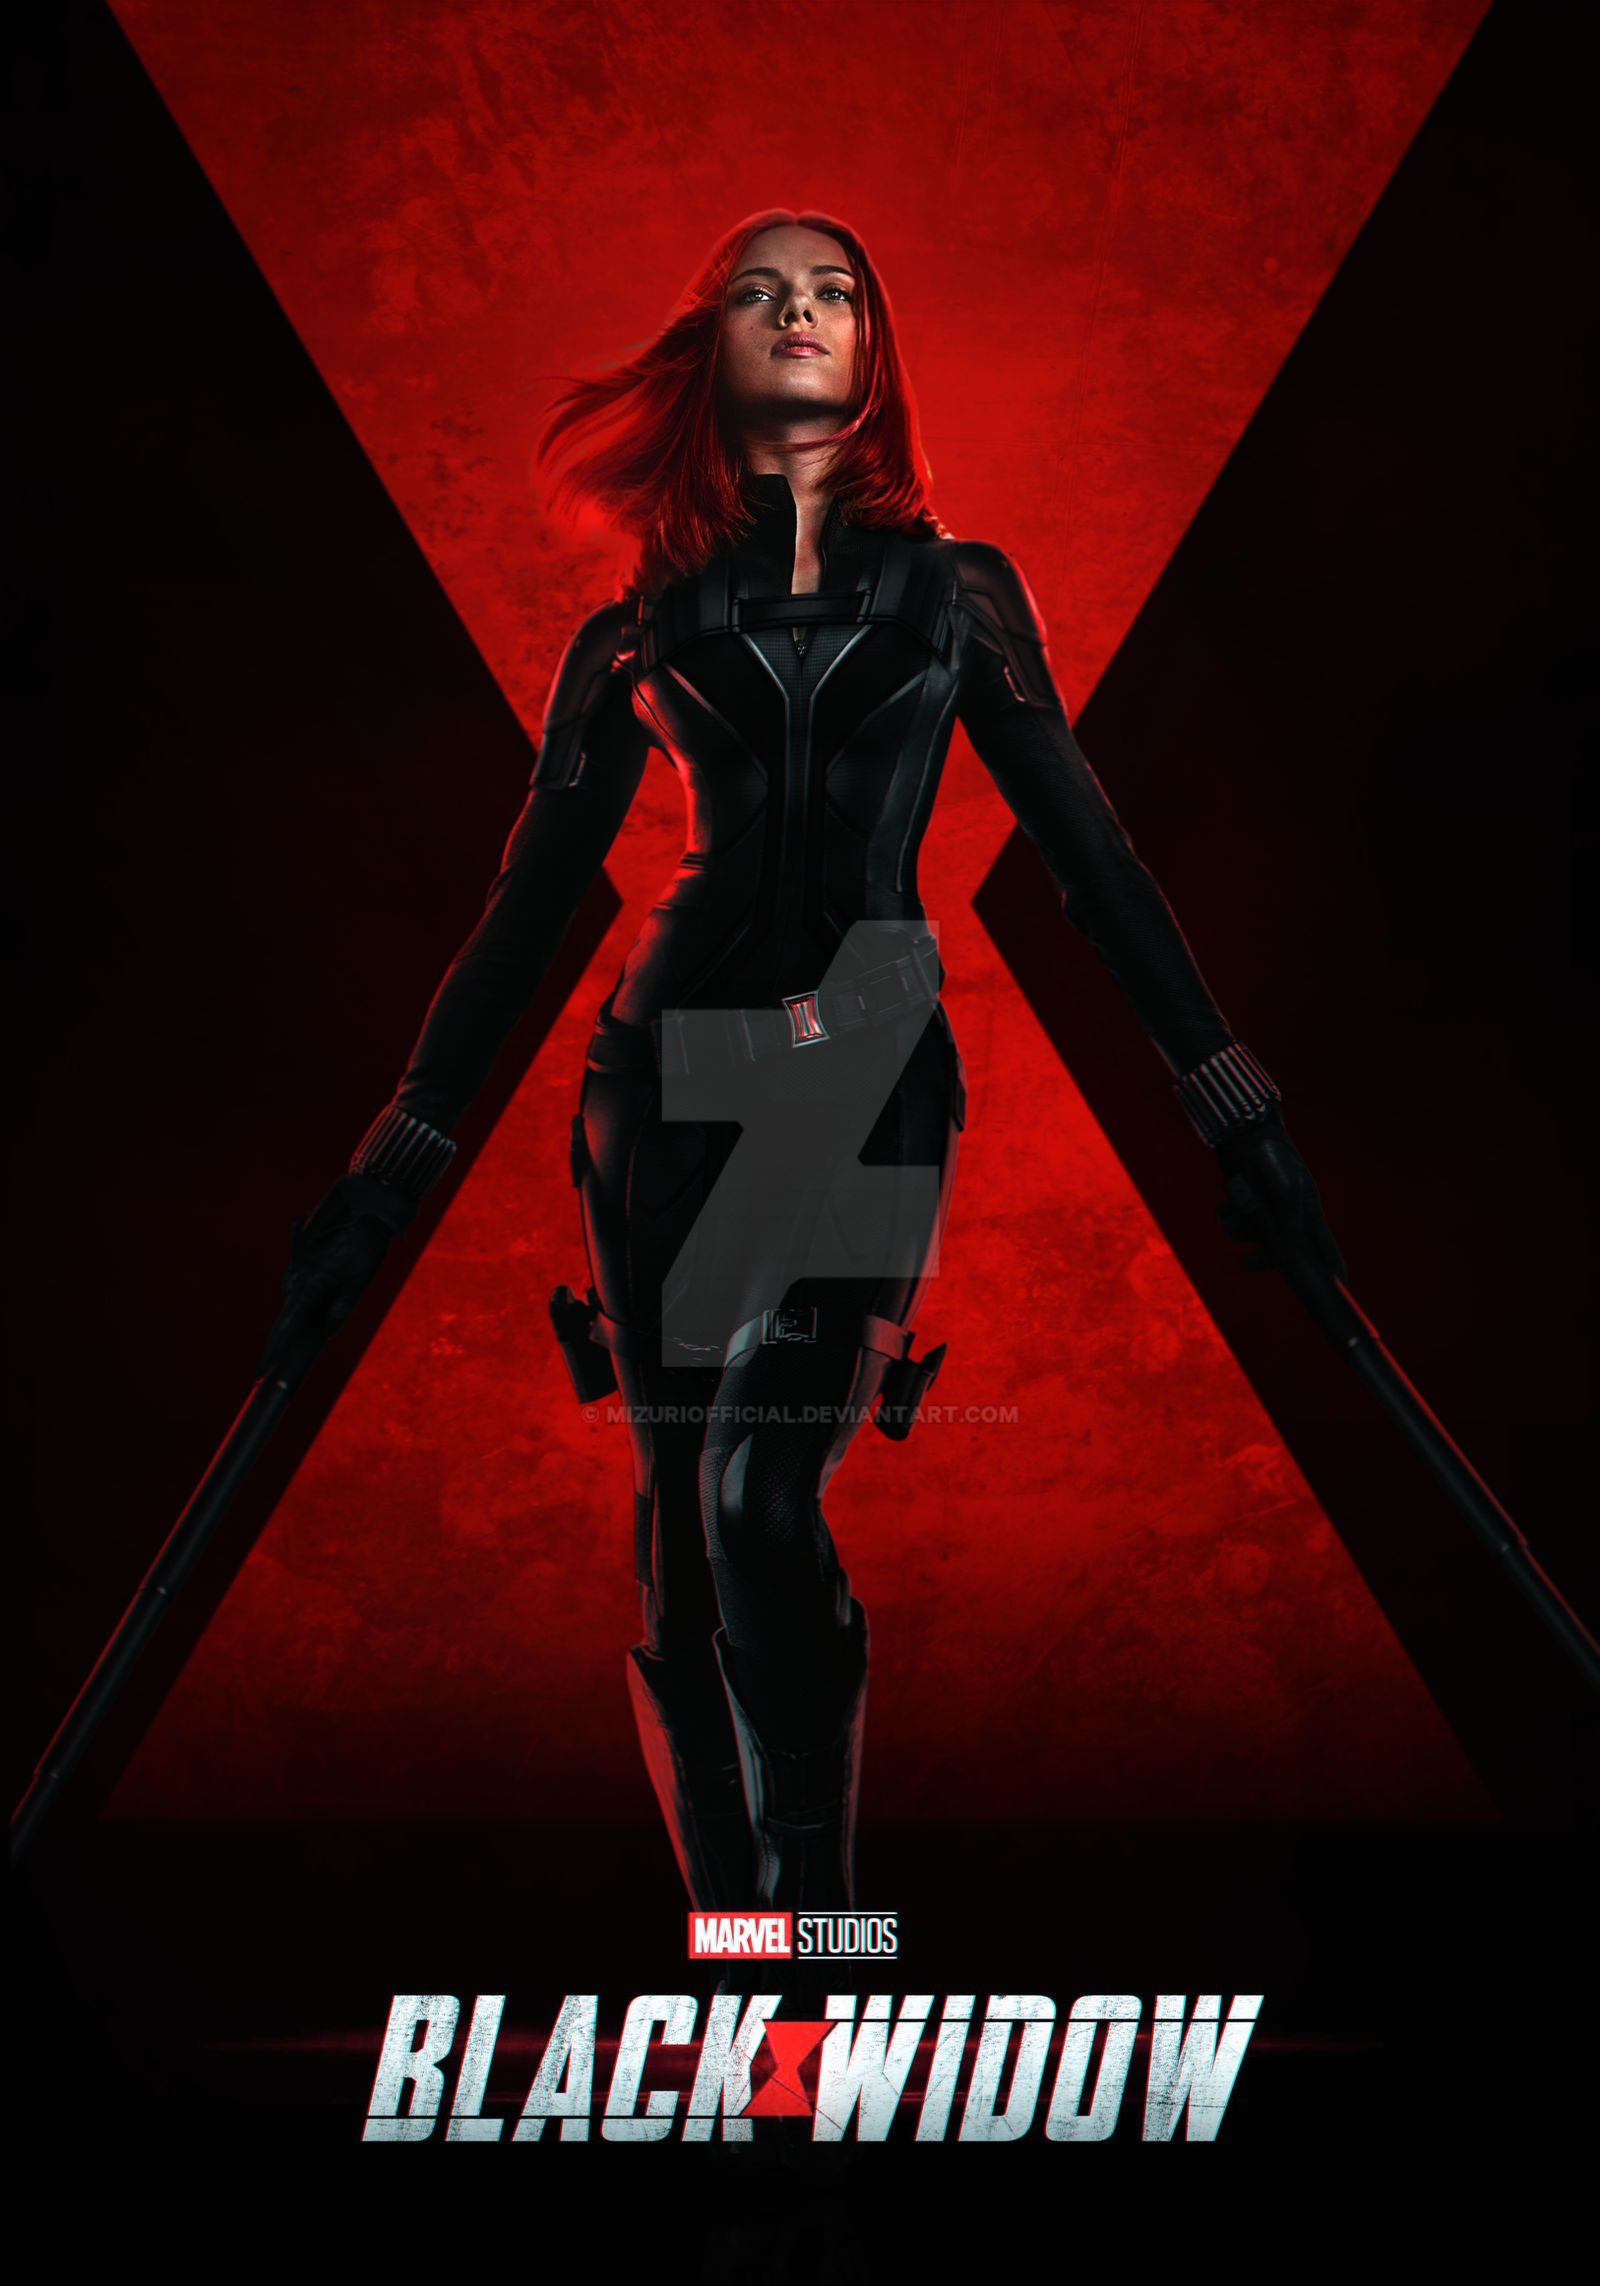 Black Widow Scarlett Johansson By Mizuriofficial On Deviantart